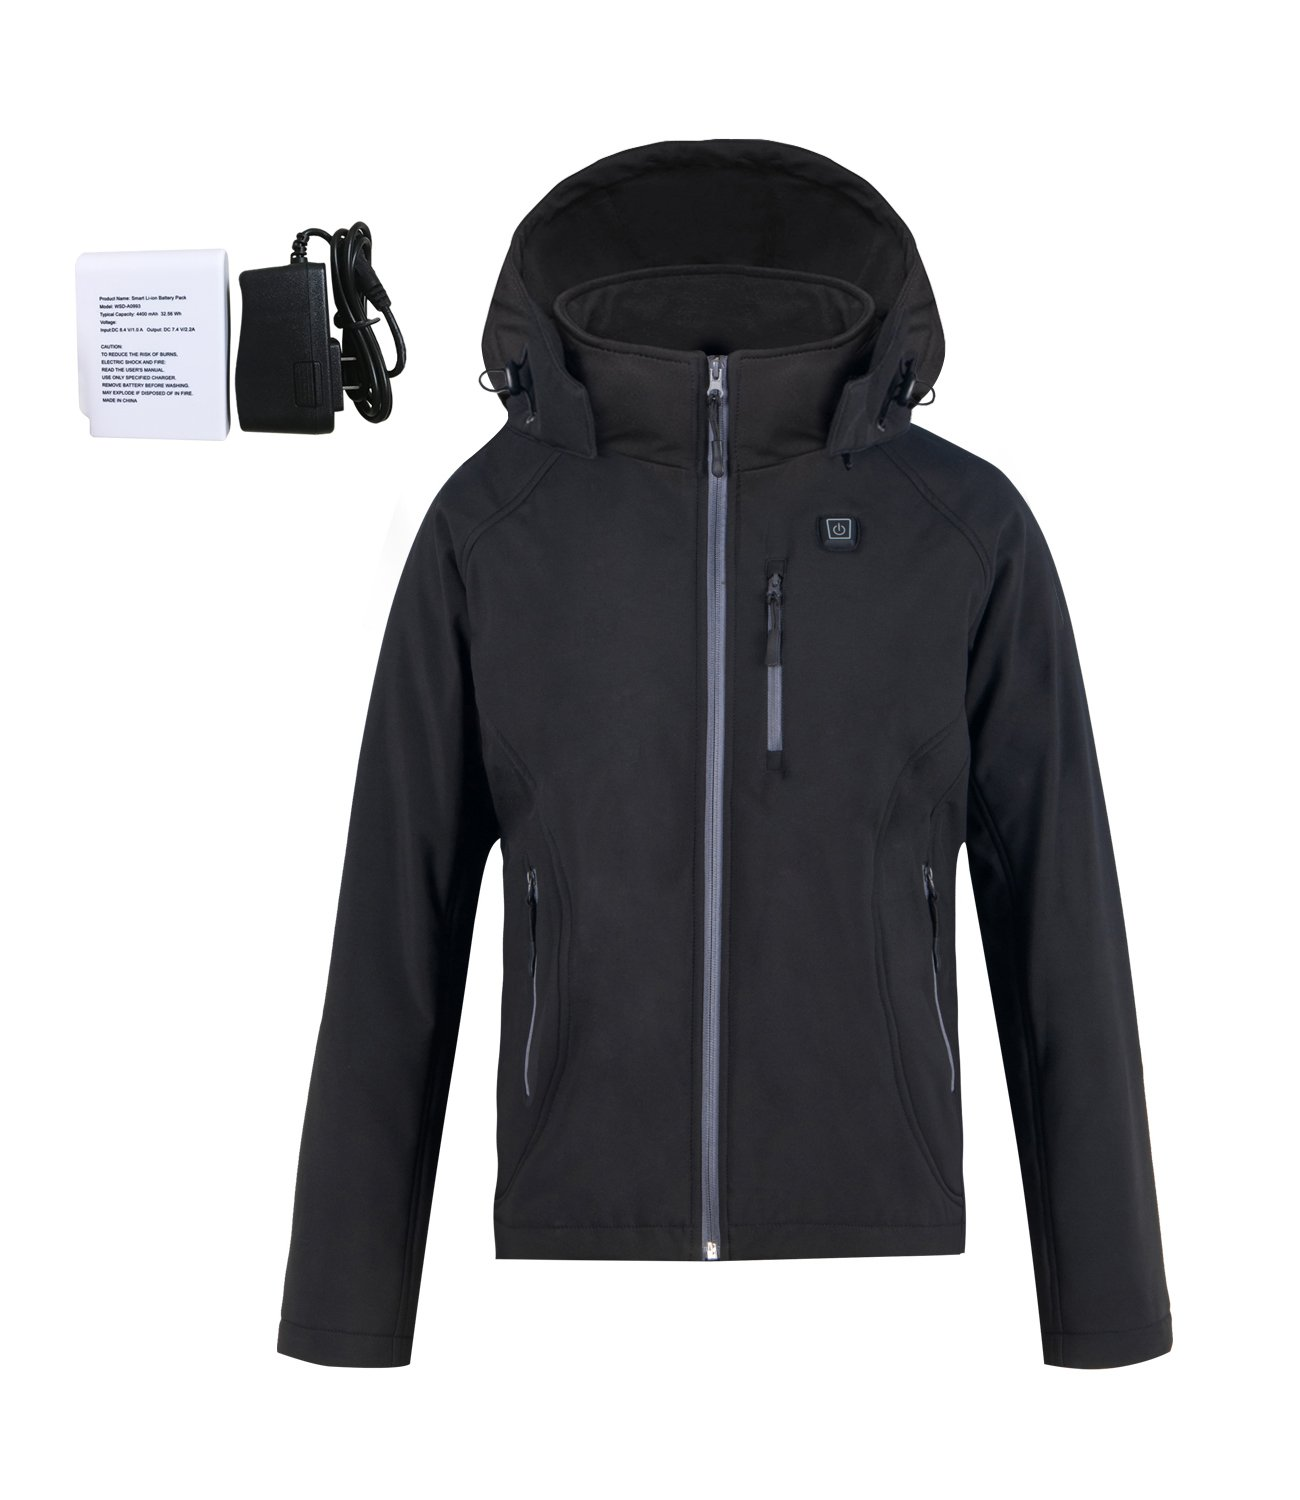 Women's Heated Jacket,Tkria Slim Heated Jacket Kit with Battery Pack Outwear (Detachable Hood) by Tkria (Image #1)